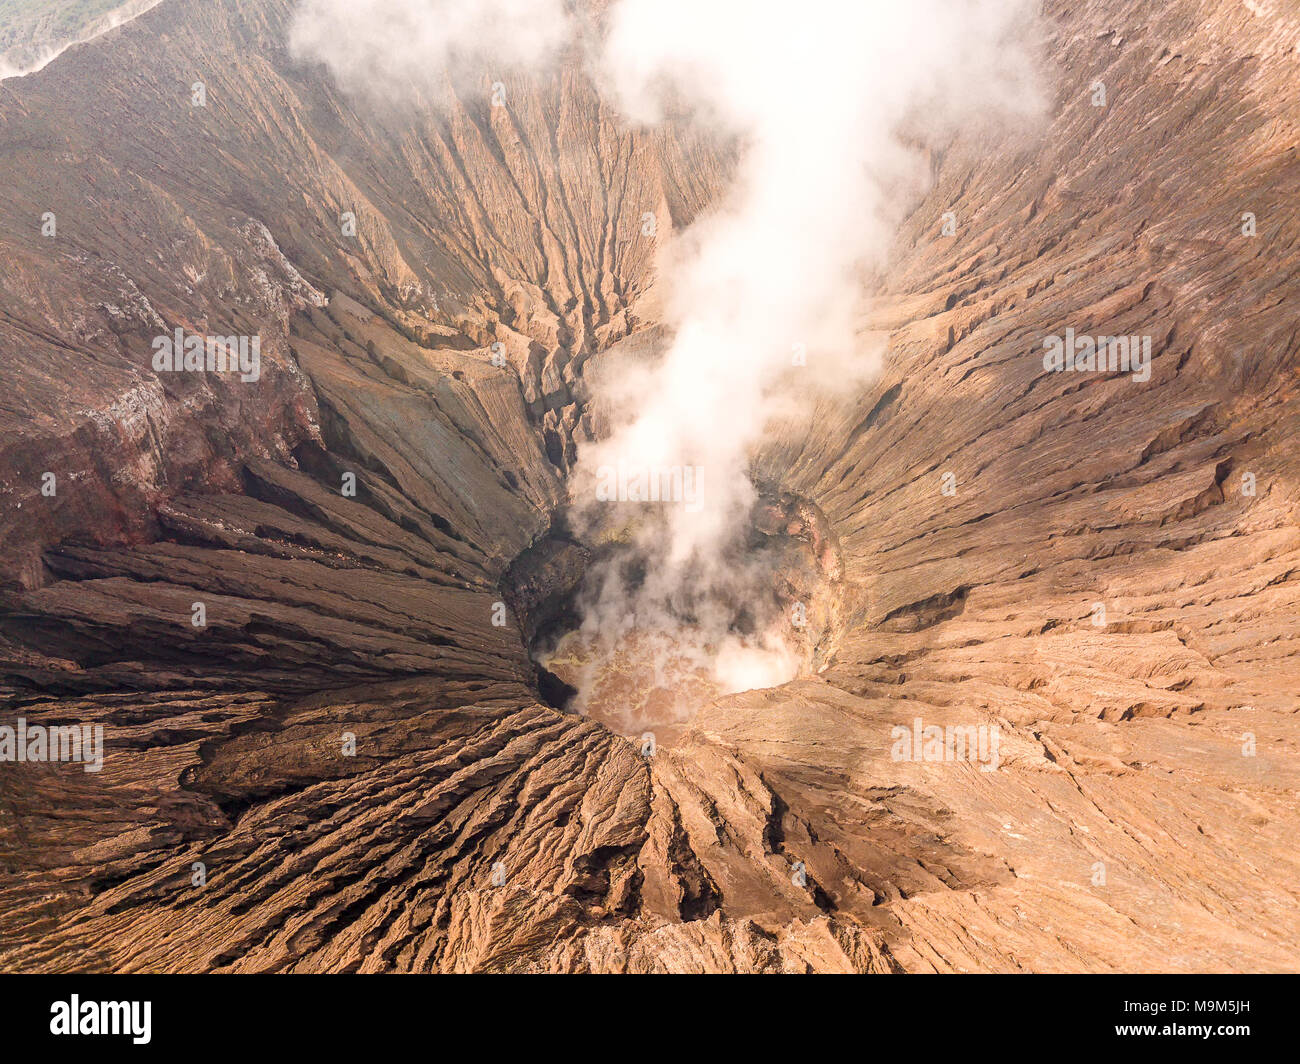 Indonesia. Java island. The active volcano Bromo. Aerial view of the slopes of the crater and smoke - Stock Image